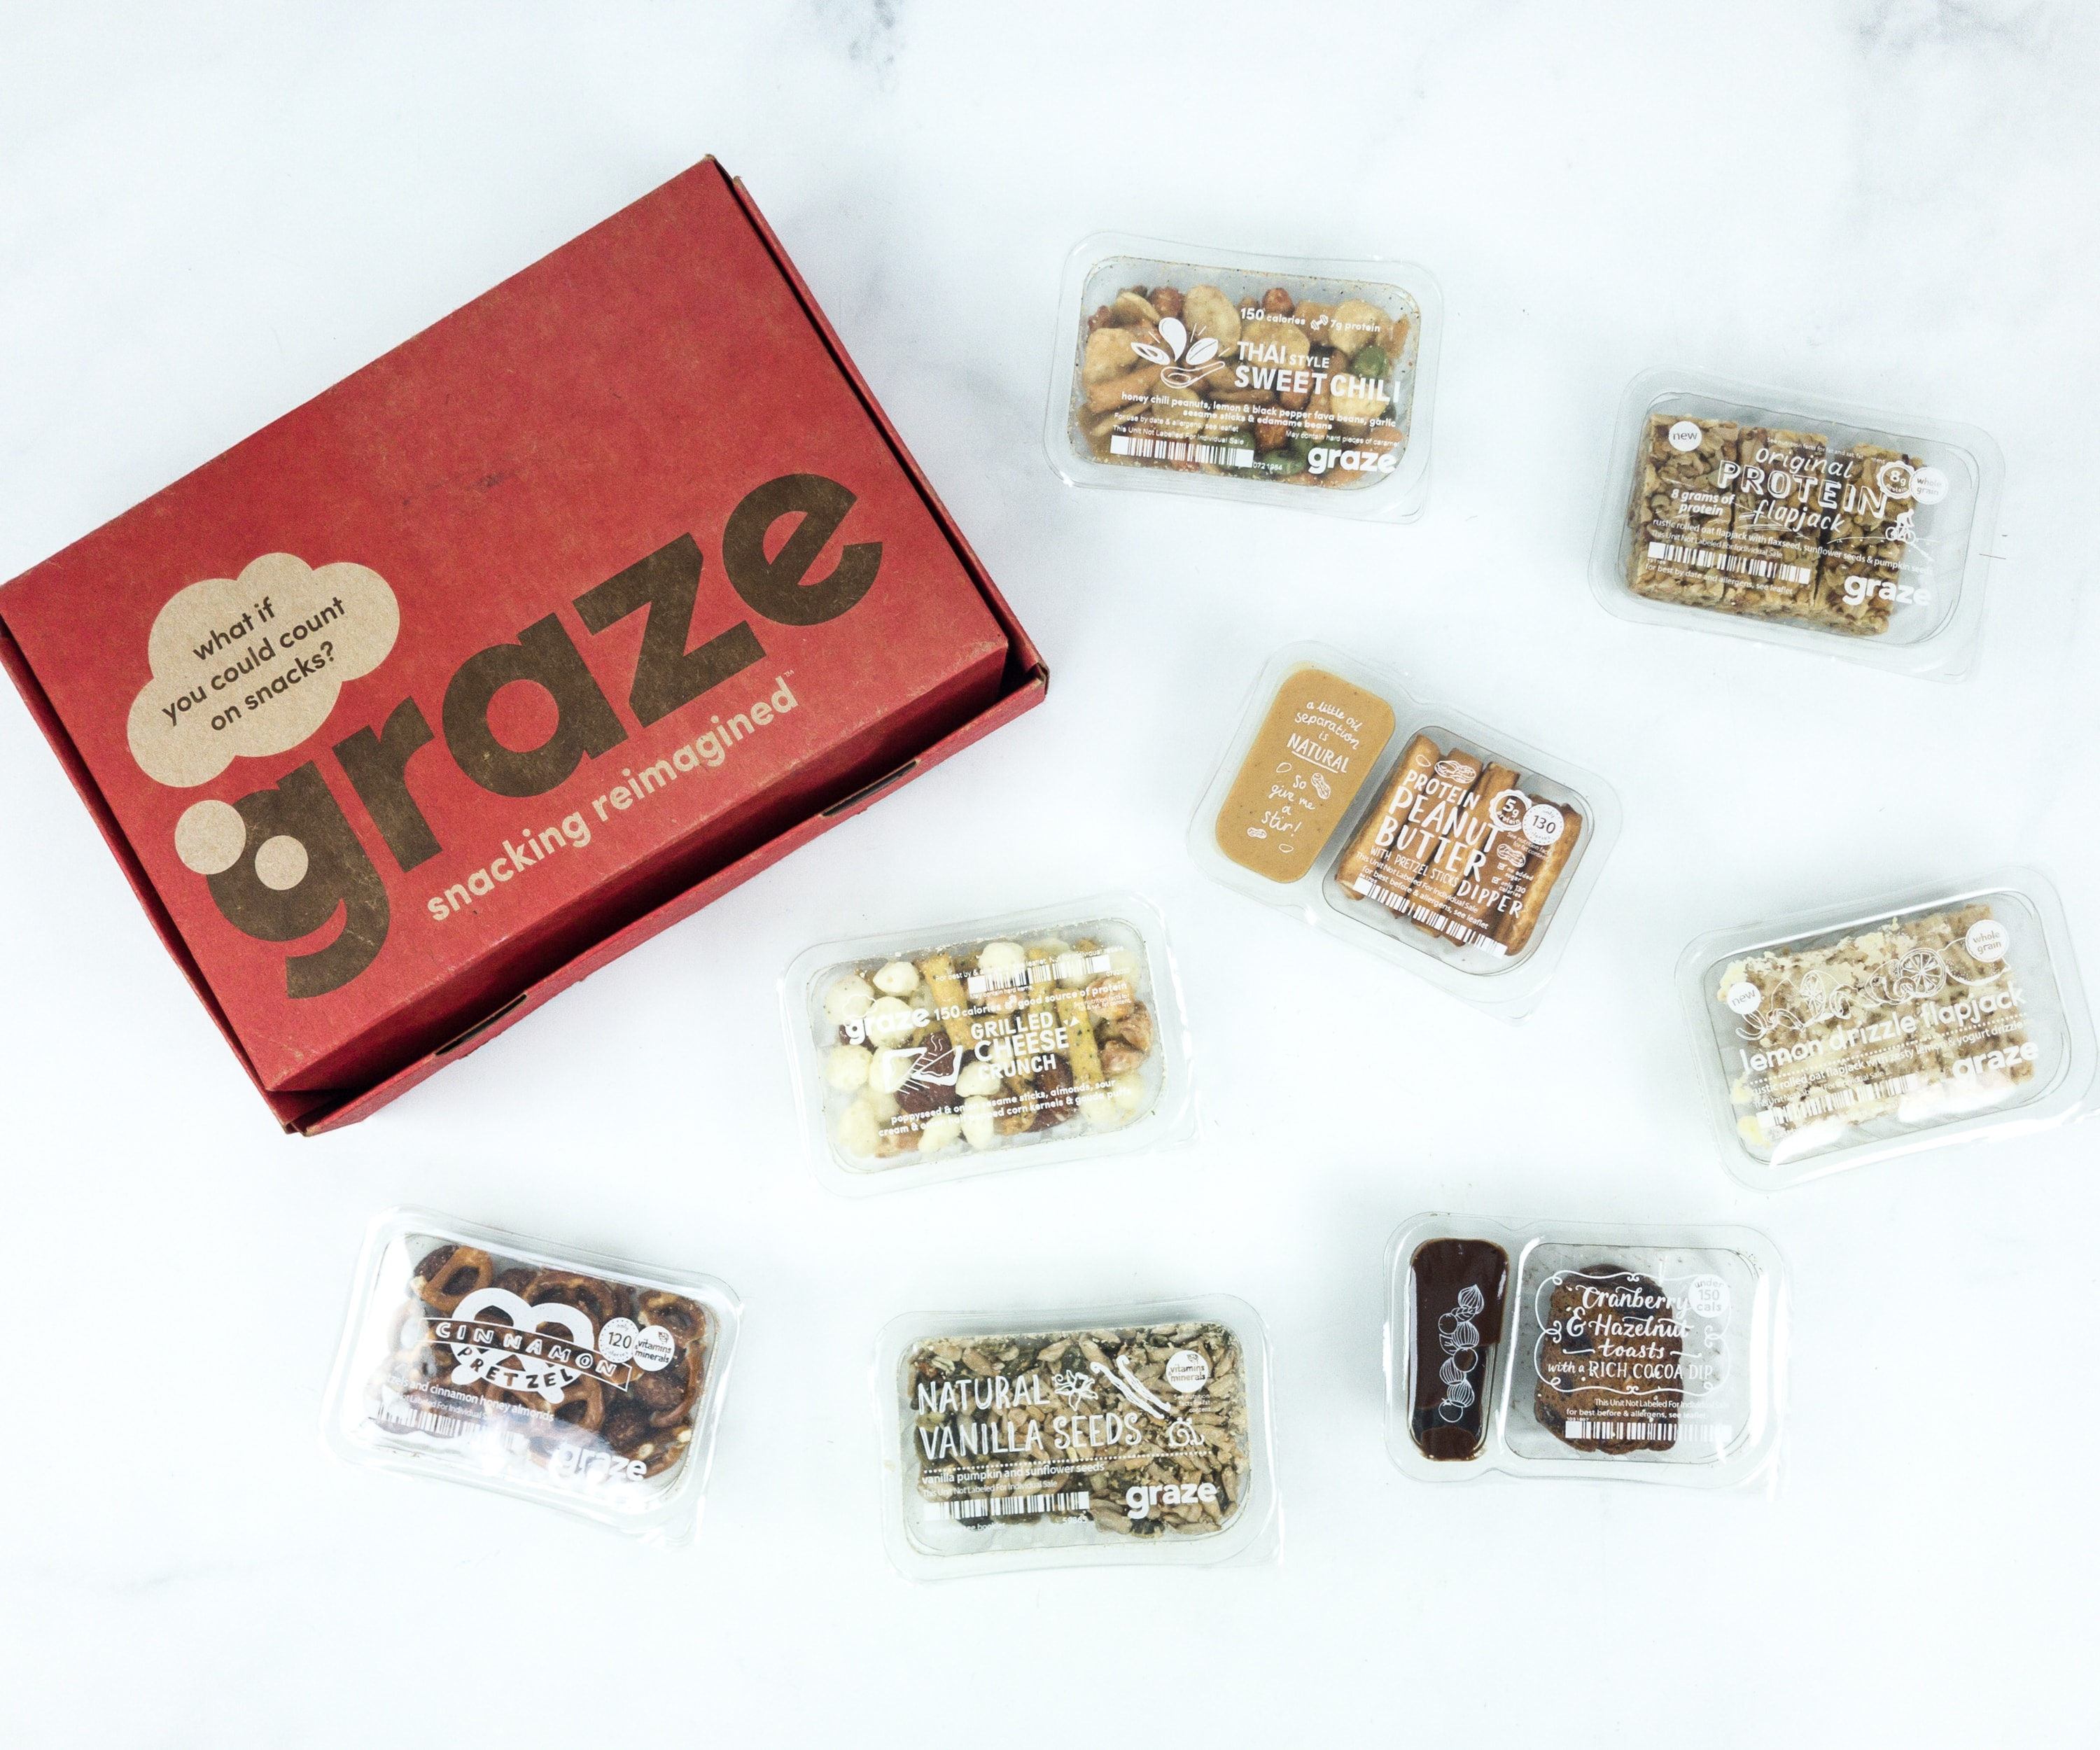 June 2019 Graze Variety Box Review & Free Box Coupon